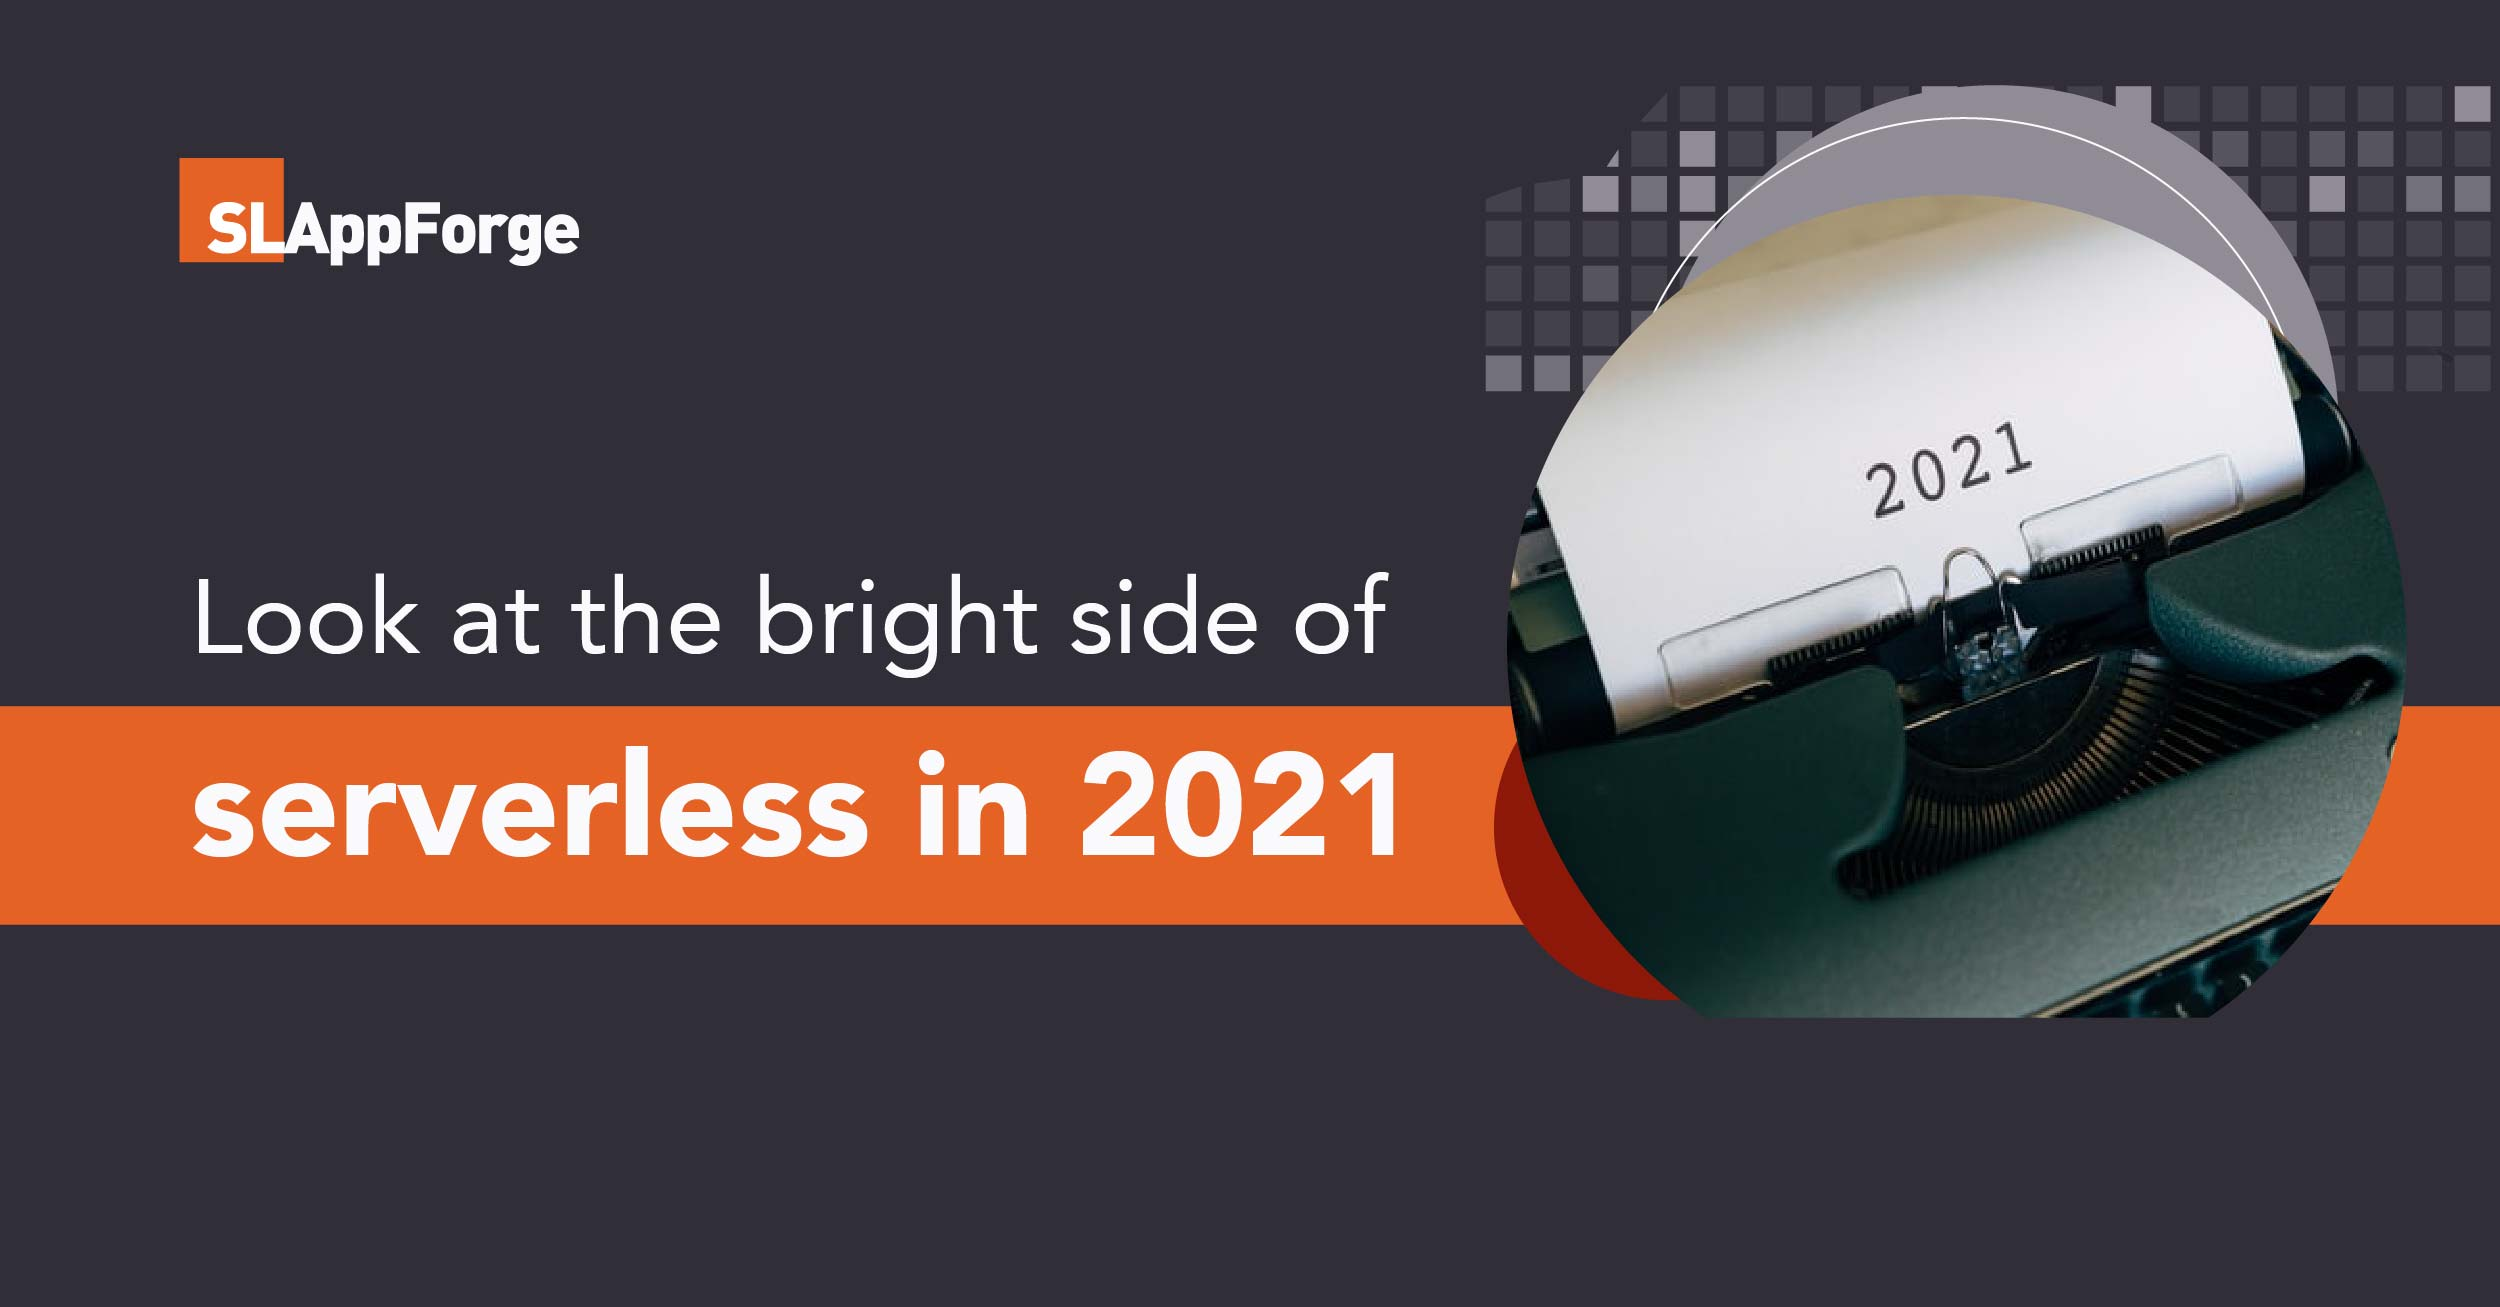 Learn to look at the bright side of Serverless in 2021